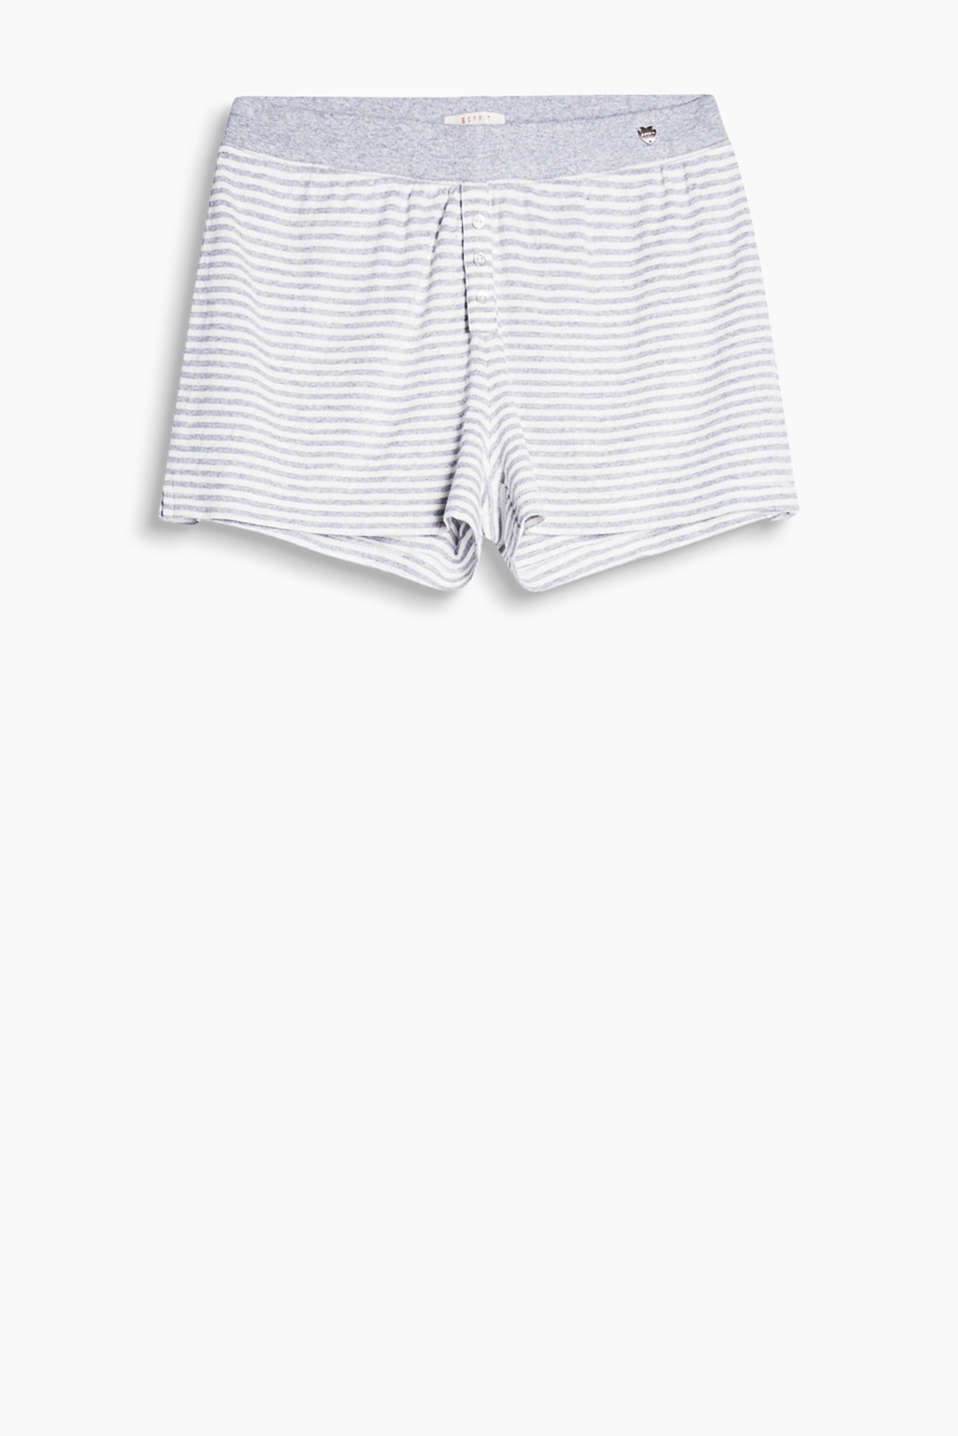 Pyjama shorts with an openwork pattern, a simple stripe print and a wide elasticated waistband, 100% cotton